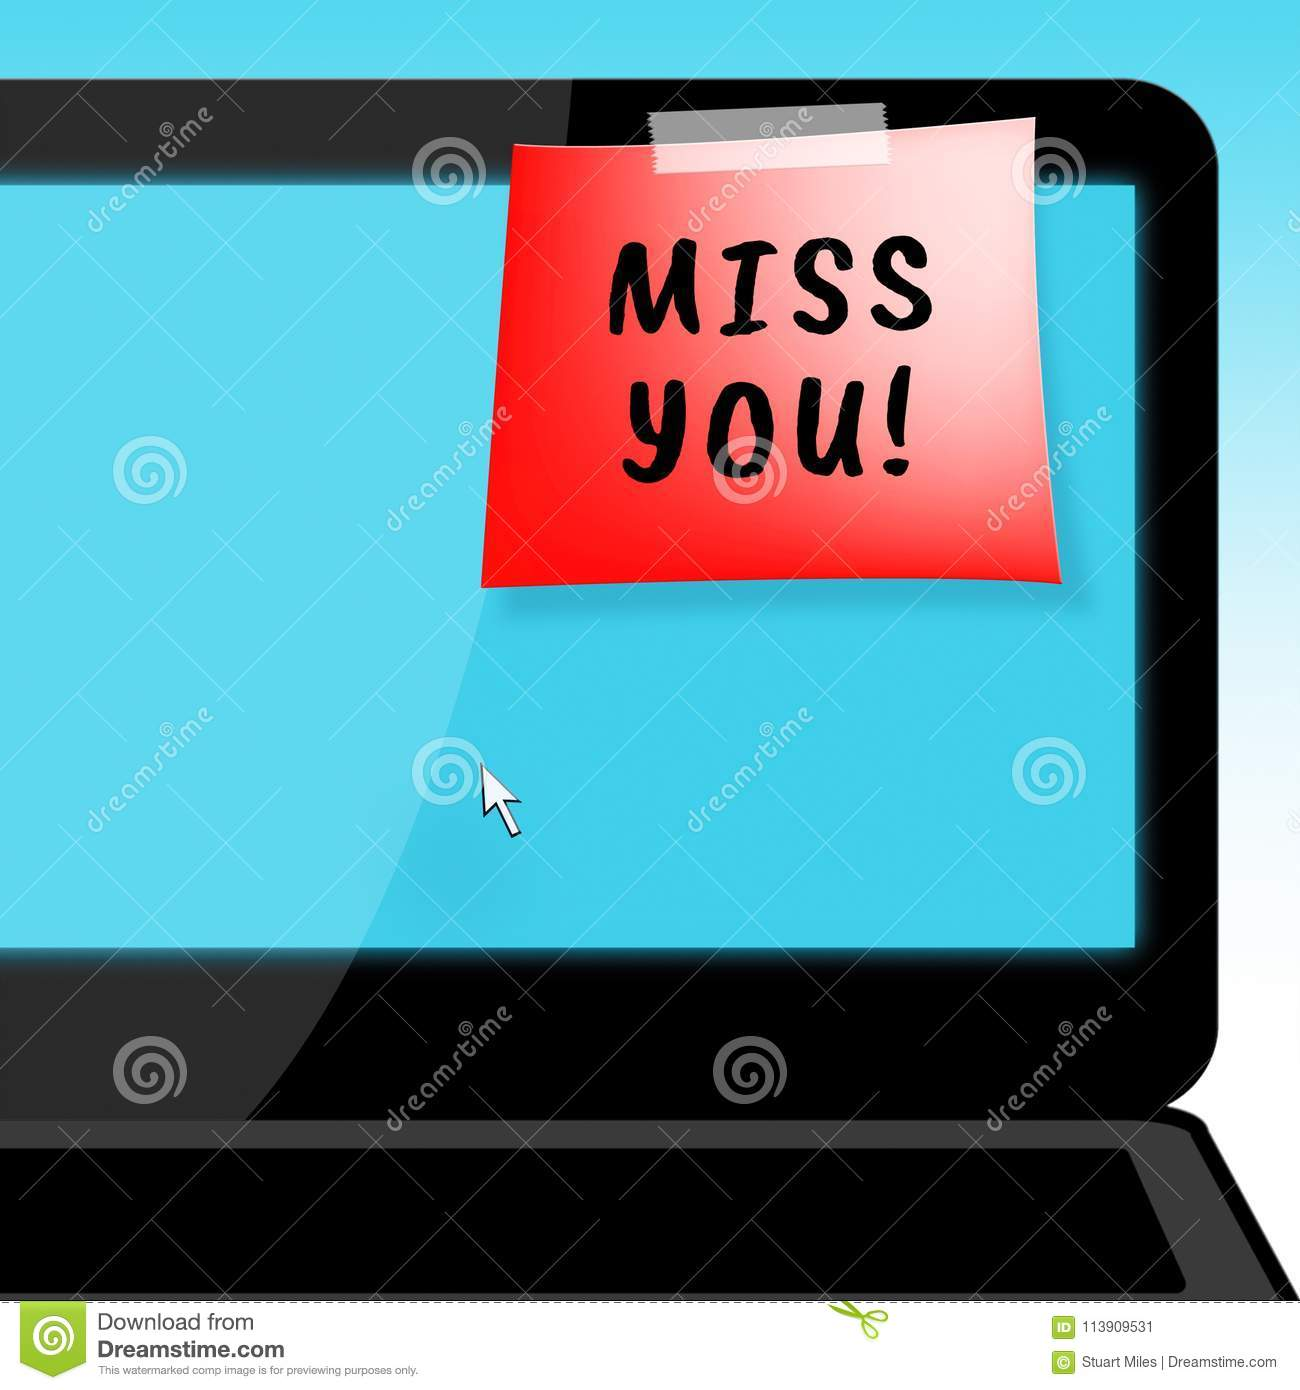 Miss You Means Love And Longing 3d Illustration Stock